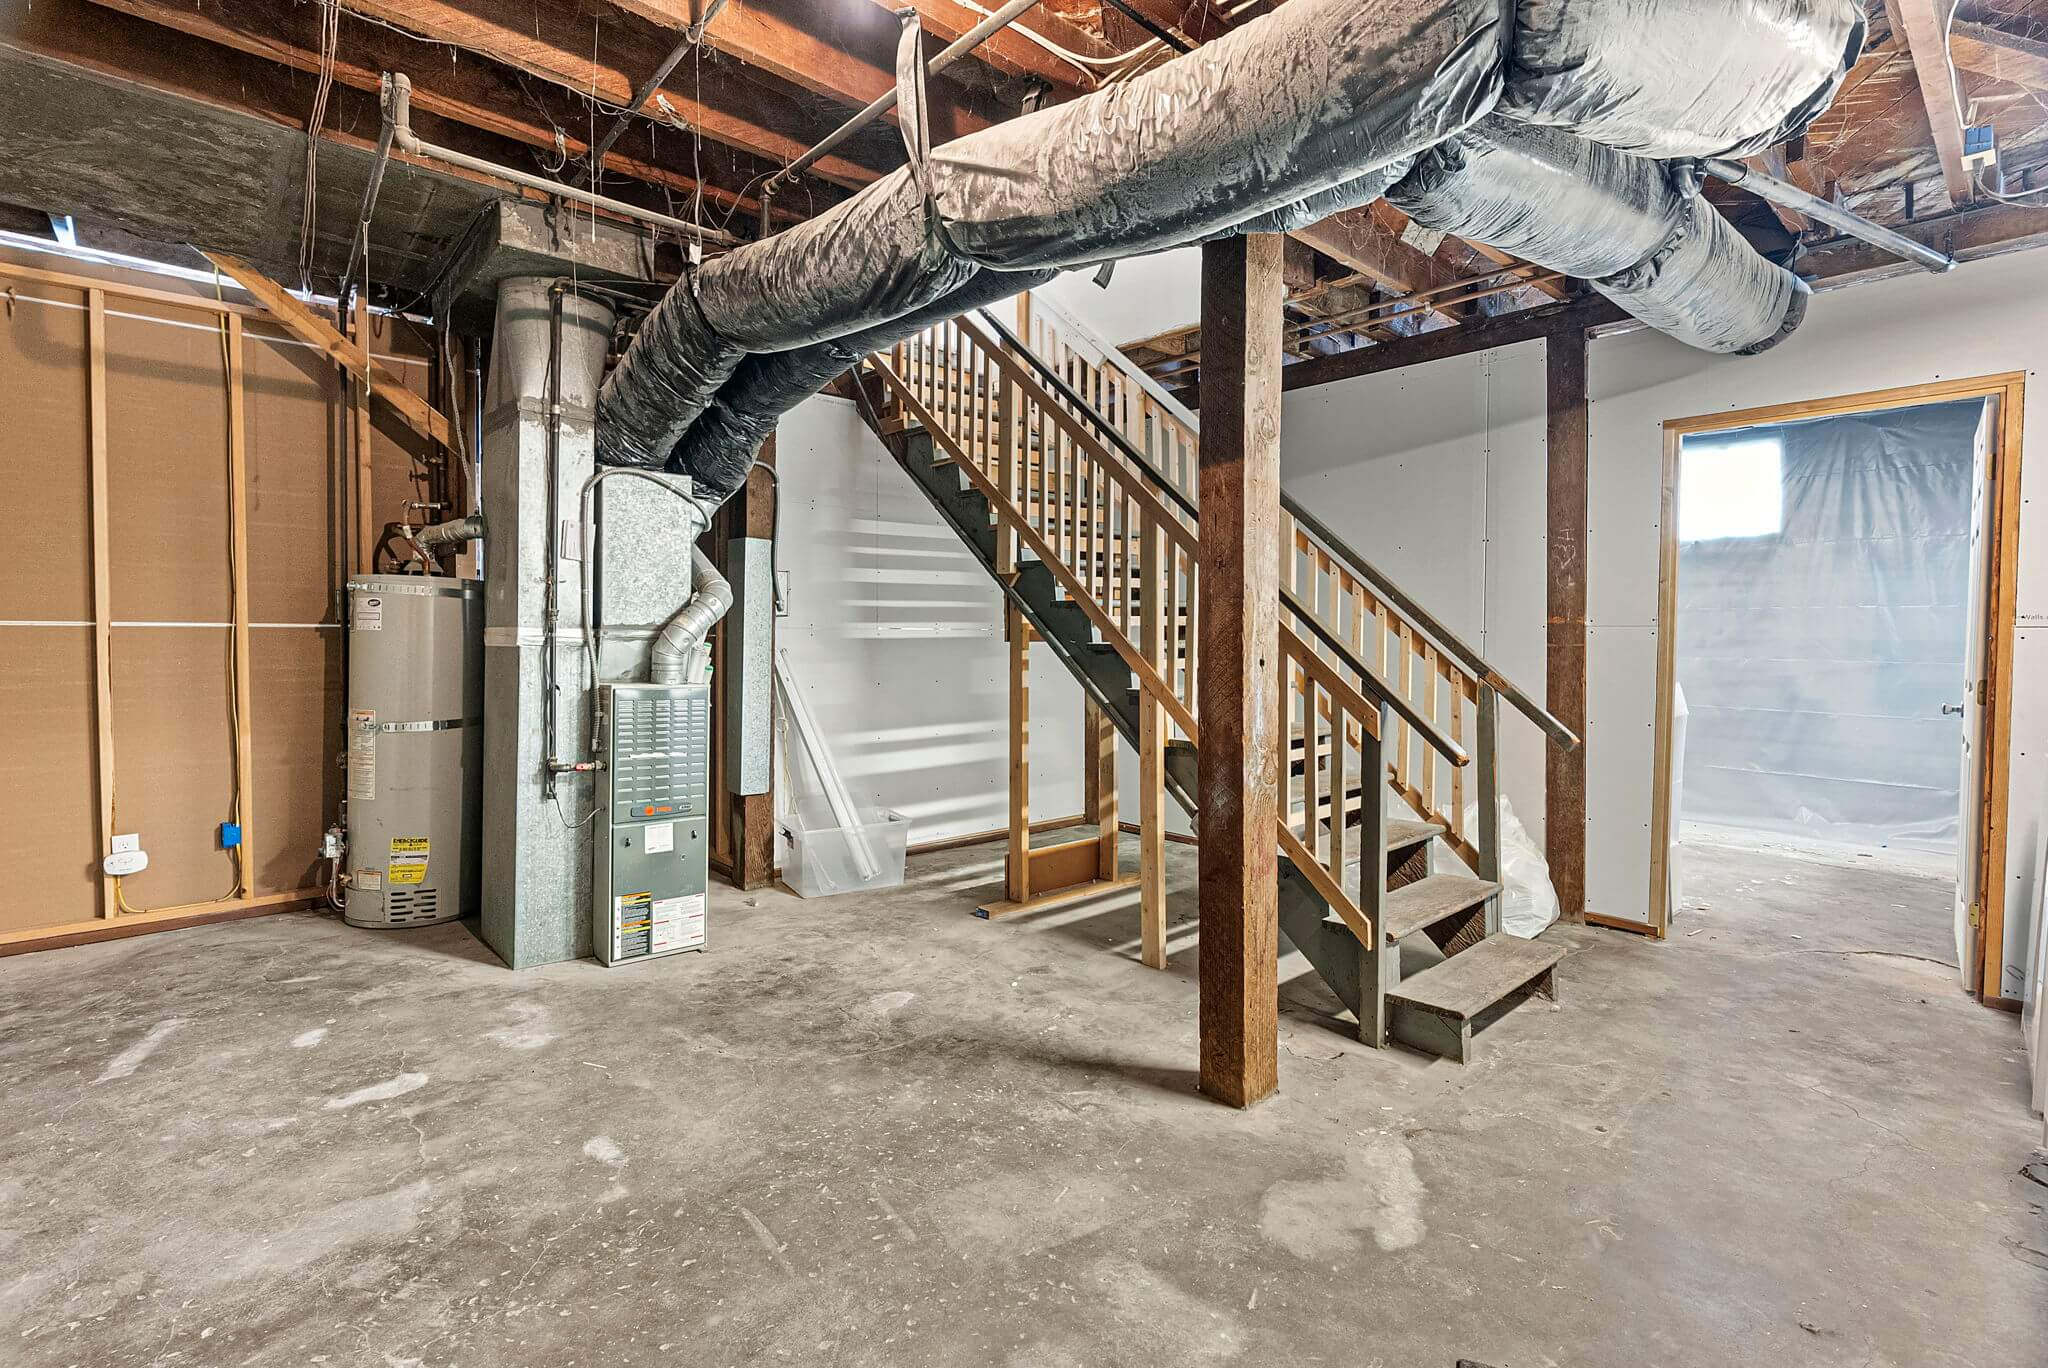 Unfinished basement with ample ceiling height